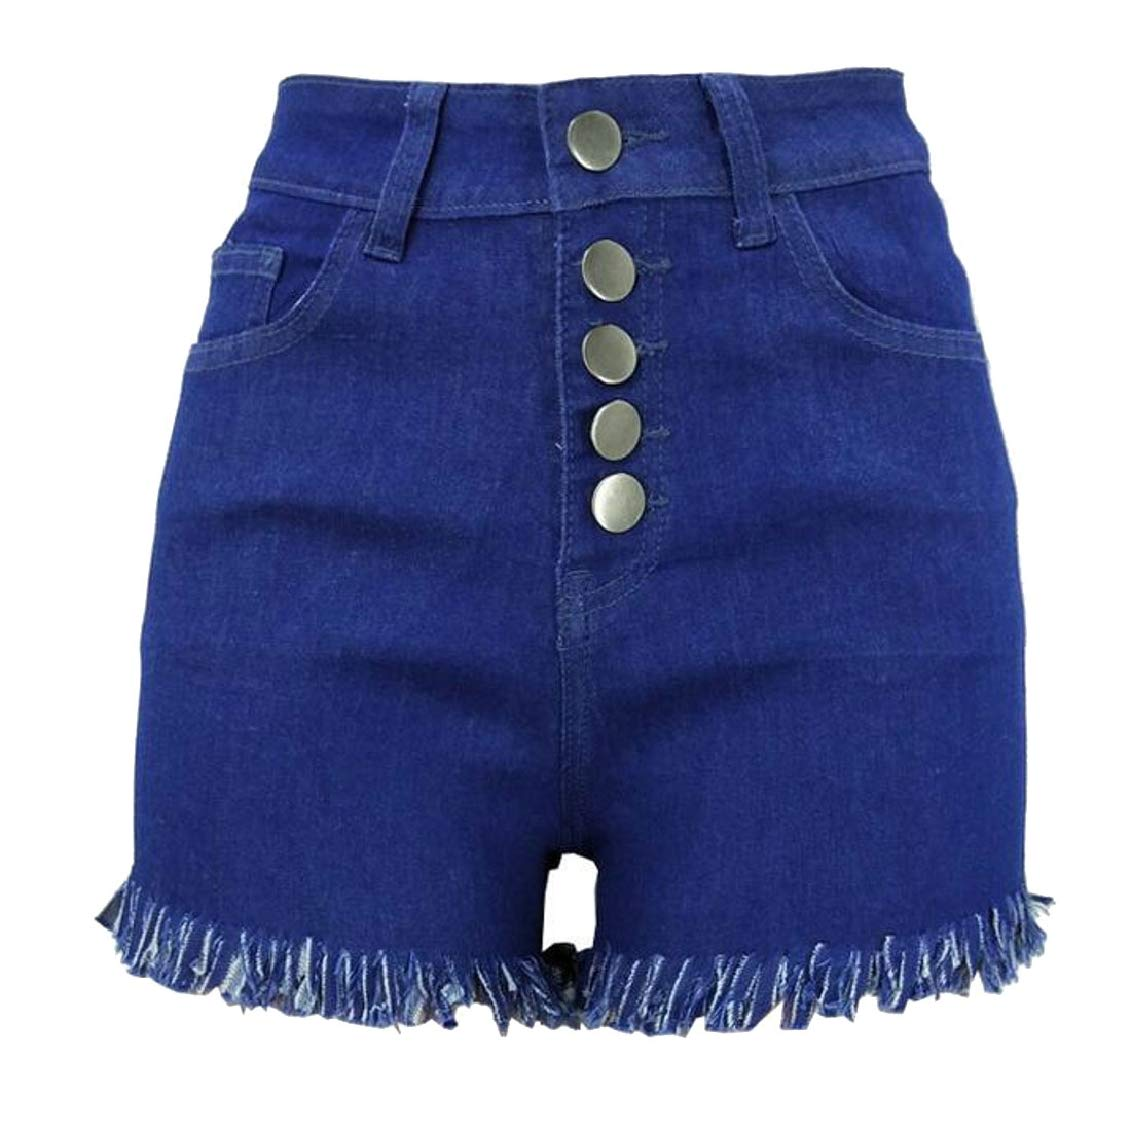 SHOWNO Womens Tassels Stretchy Casual High Waist Buttons Denim Jeans Shorts